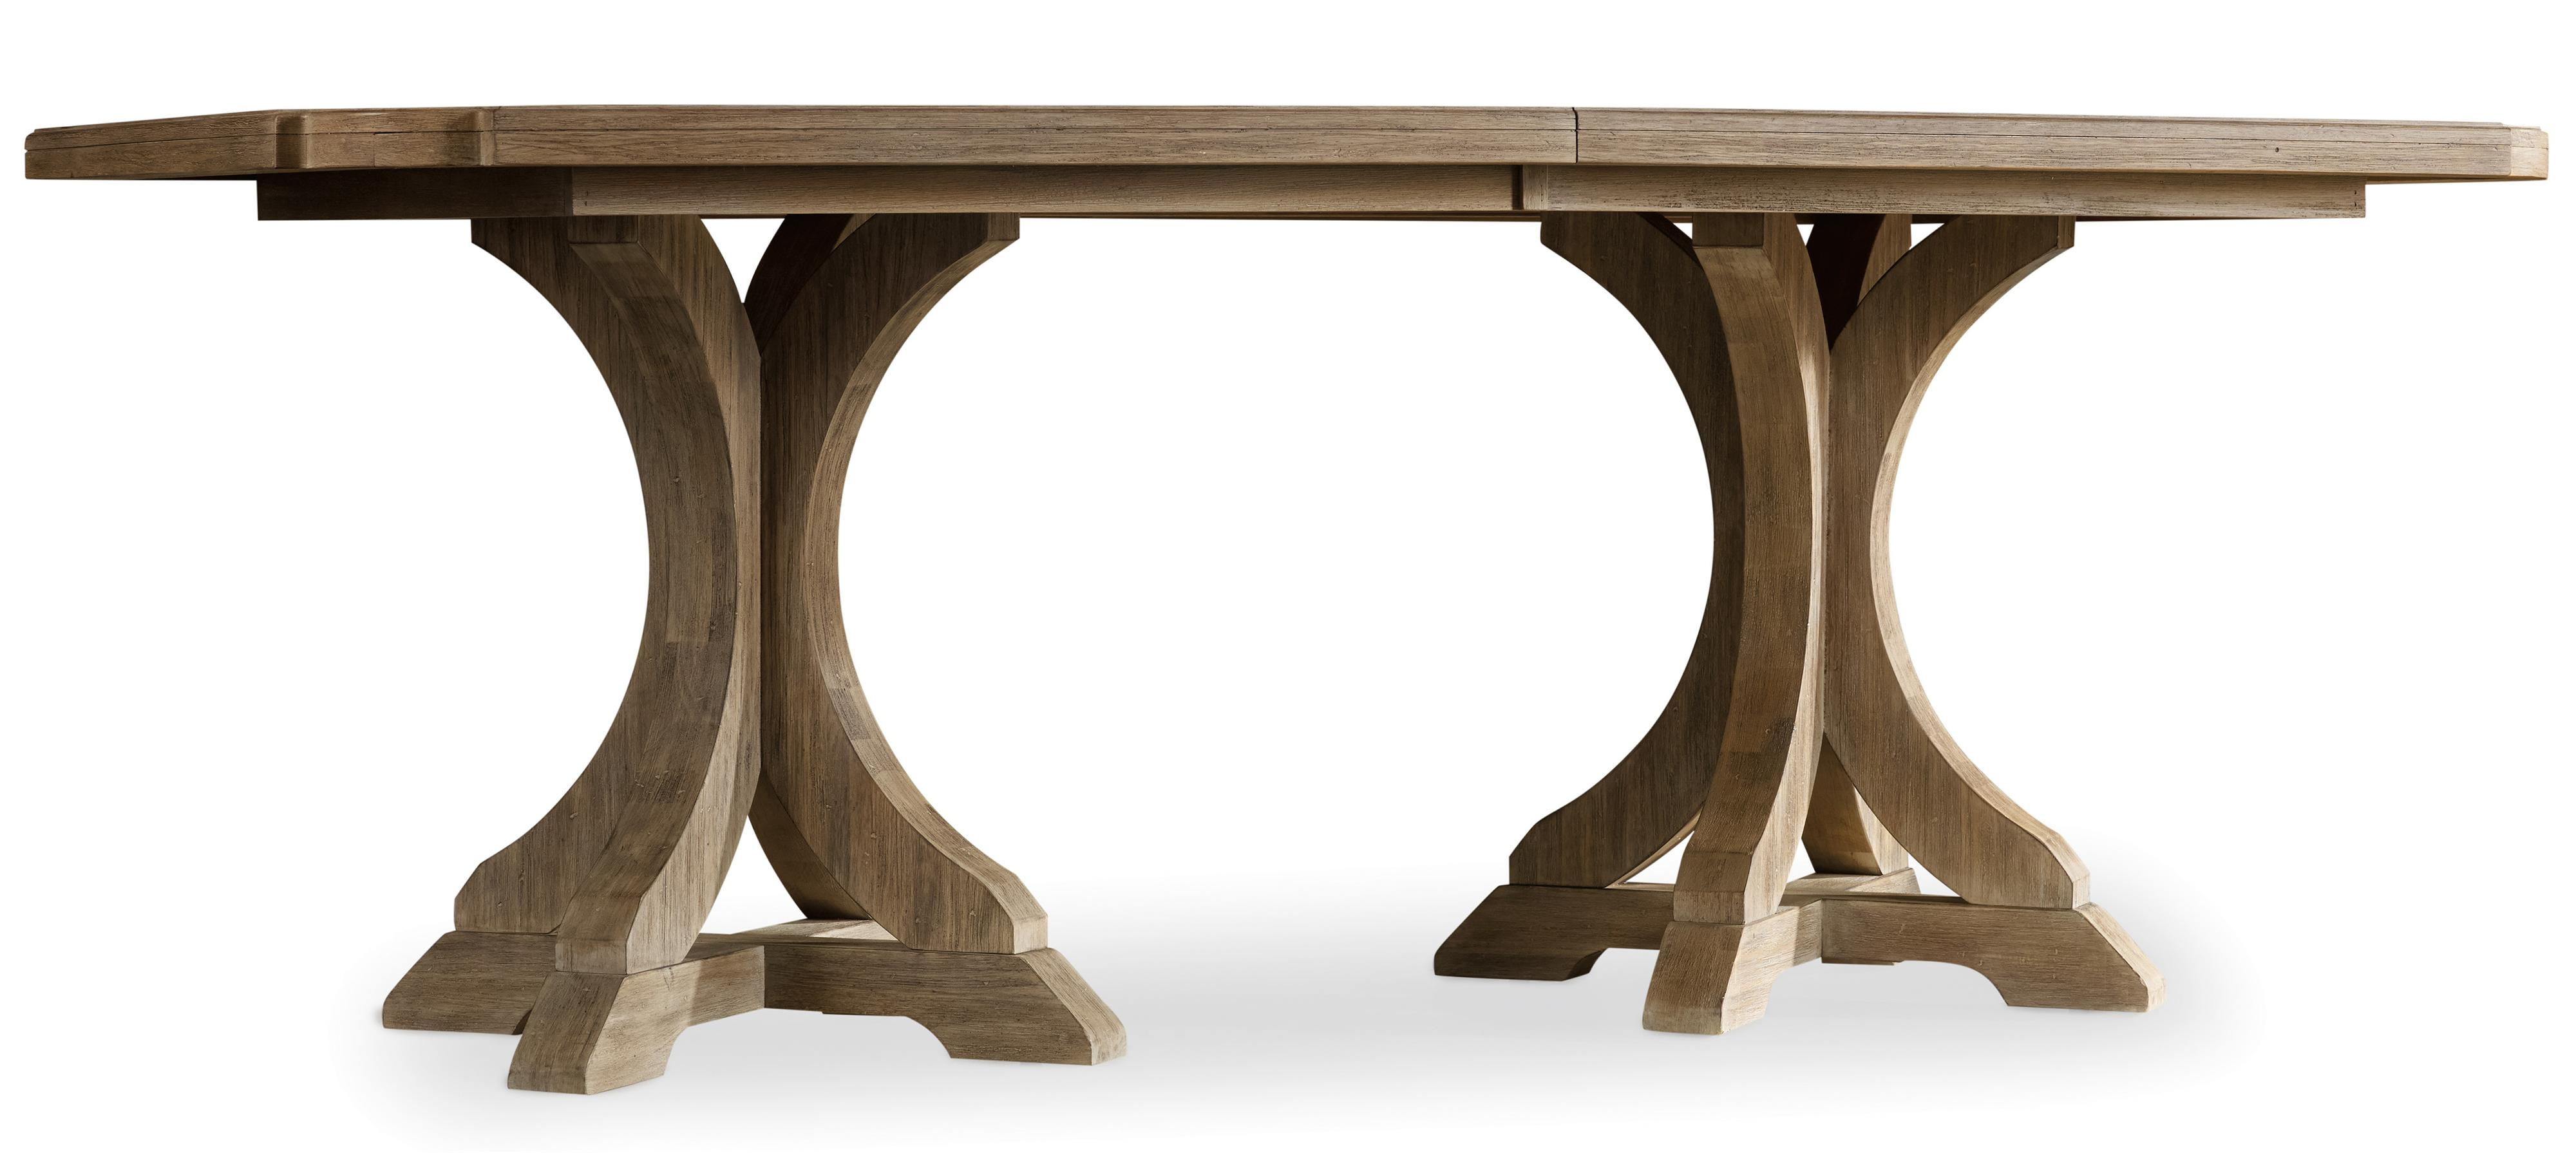 Hamilton Home Corsica Rectangle Pedestal Dining Table - Item Number: 5180-75206